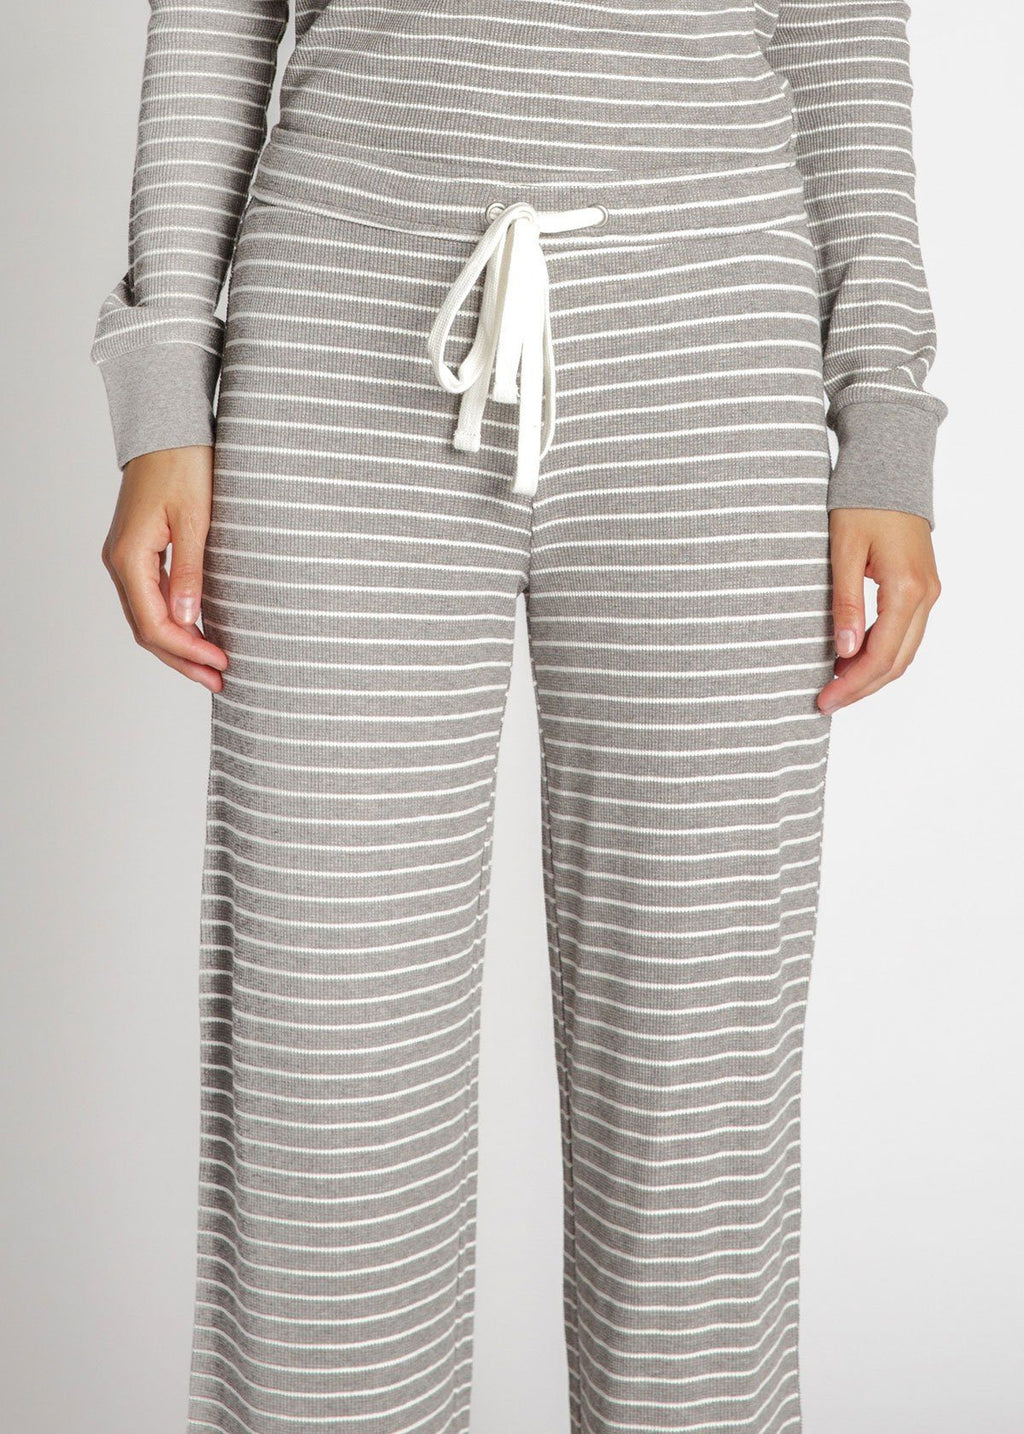 Carlisle Thermal Pants - Heather Grey Stripe